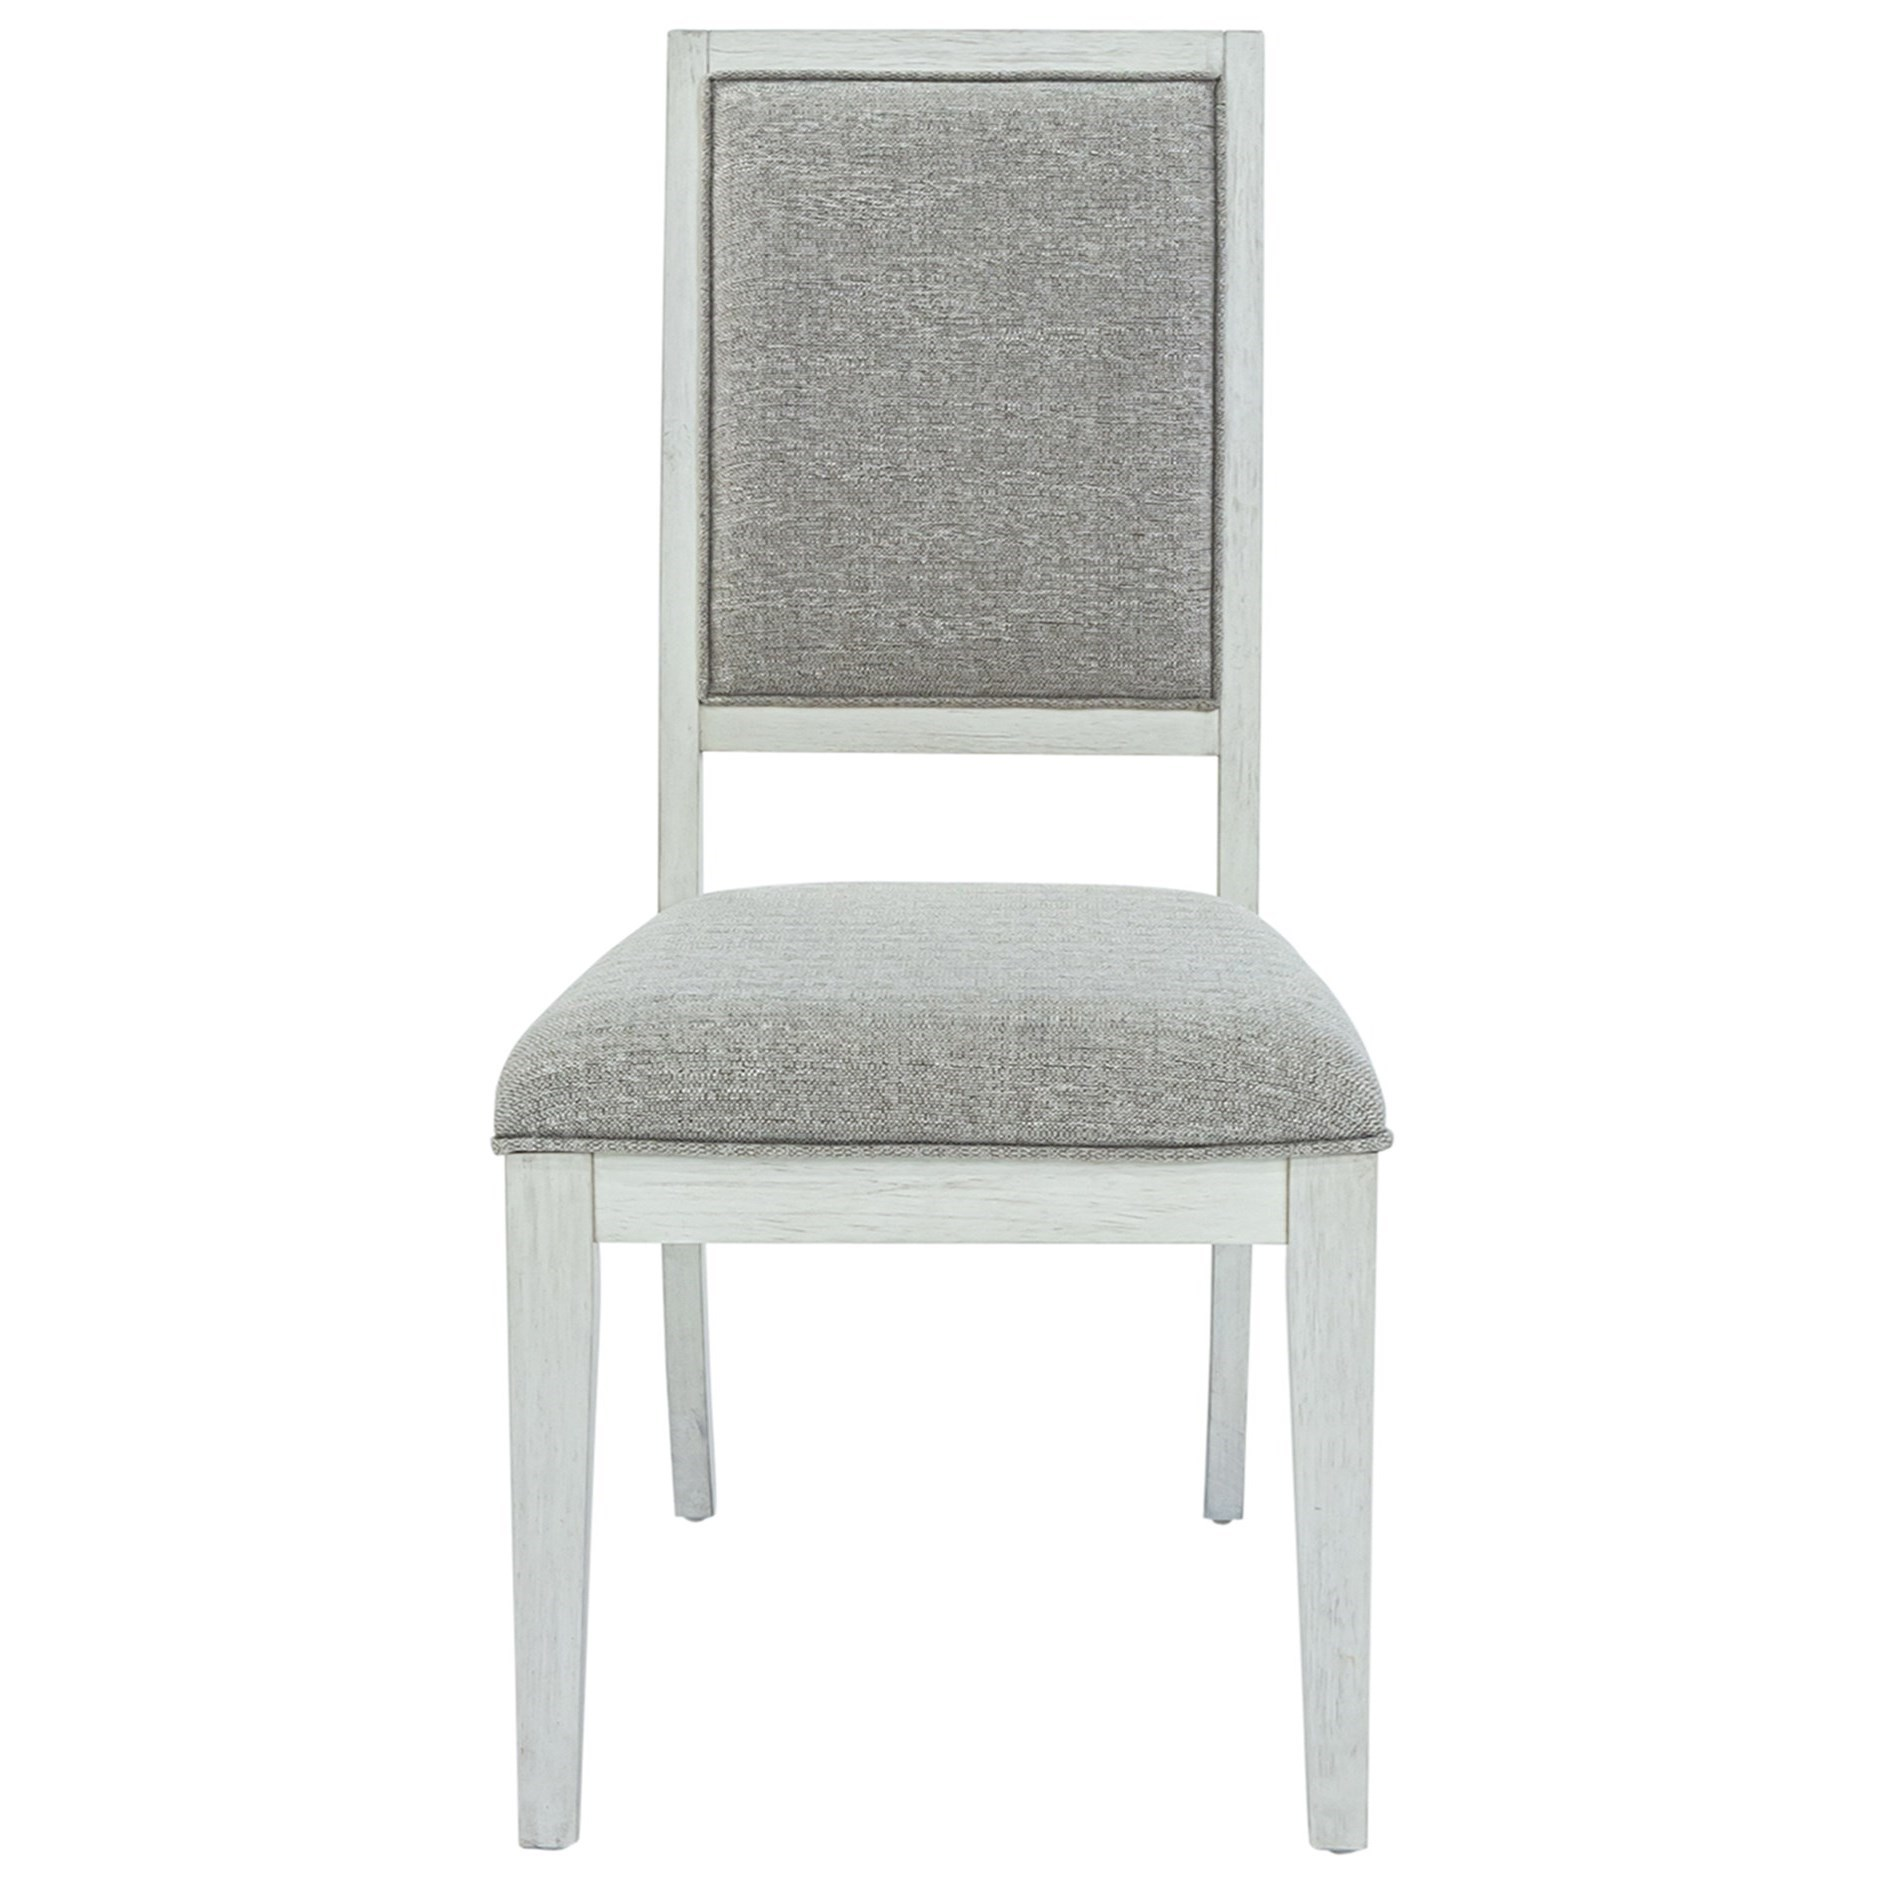 Mirage - 946 Upholstred Side Chair by Libby at Walker's Furniture